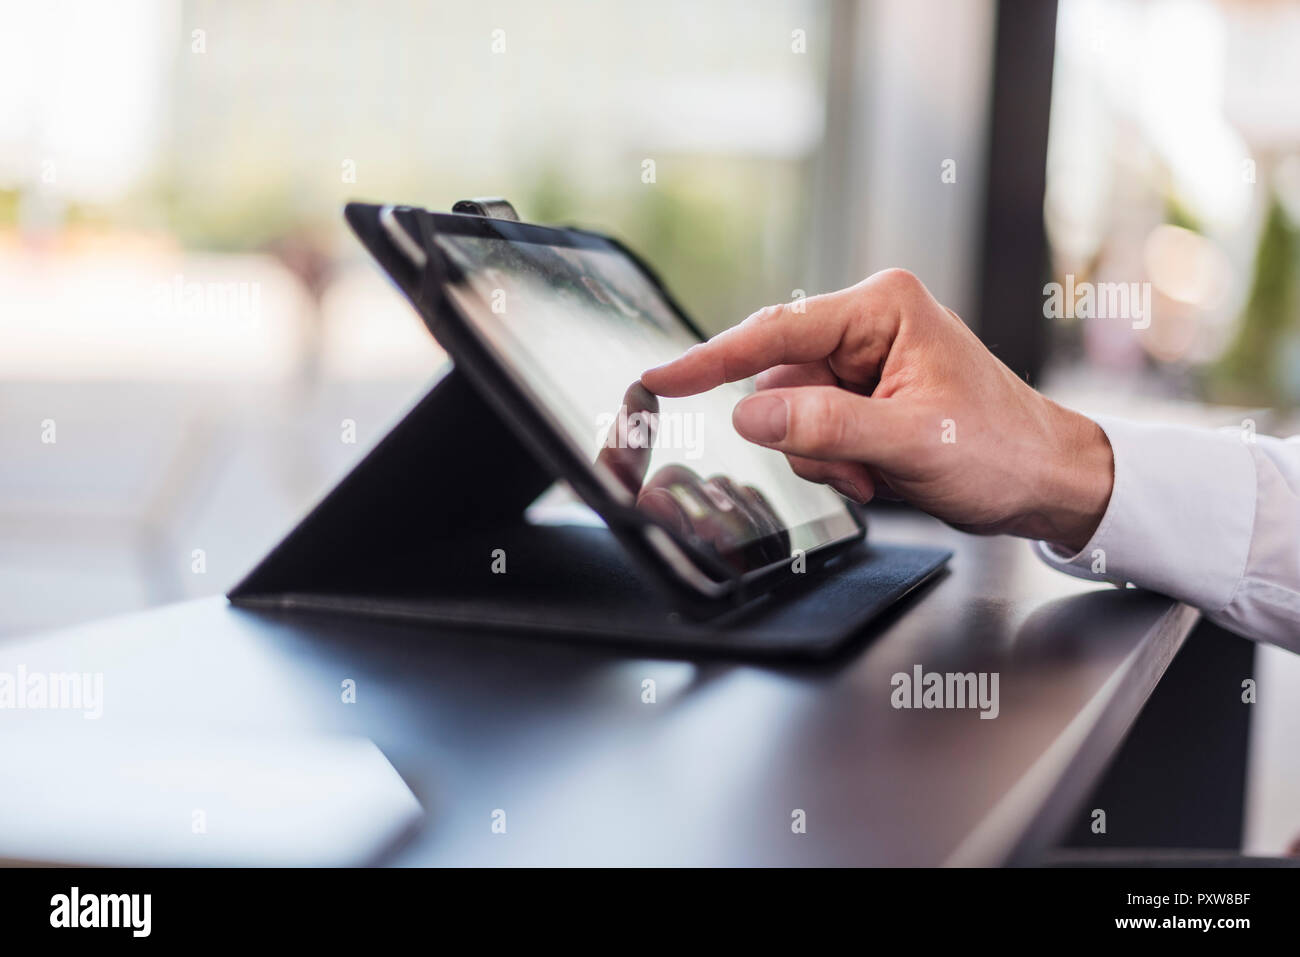 Close-up of businessman using tablet in a cafe - Stock Image